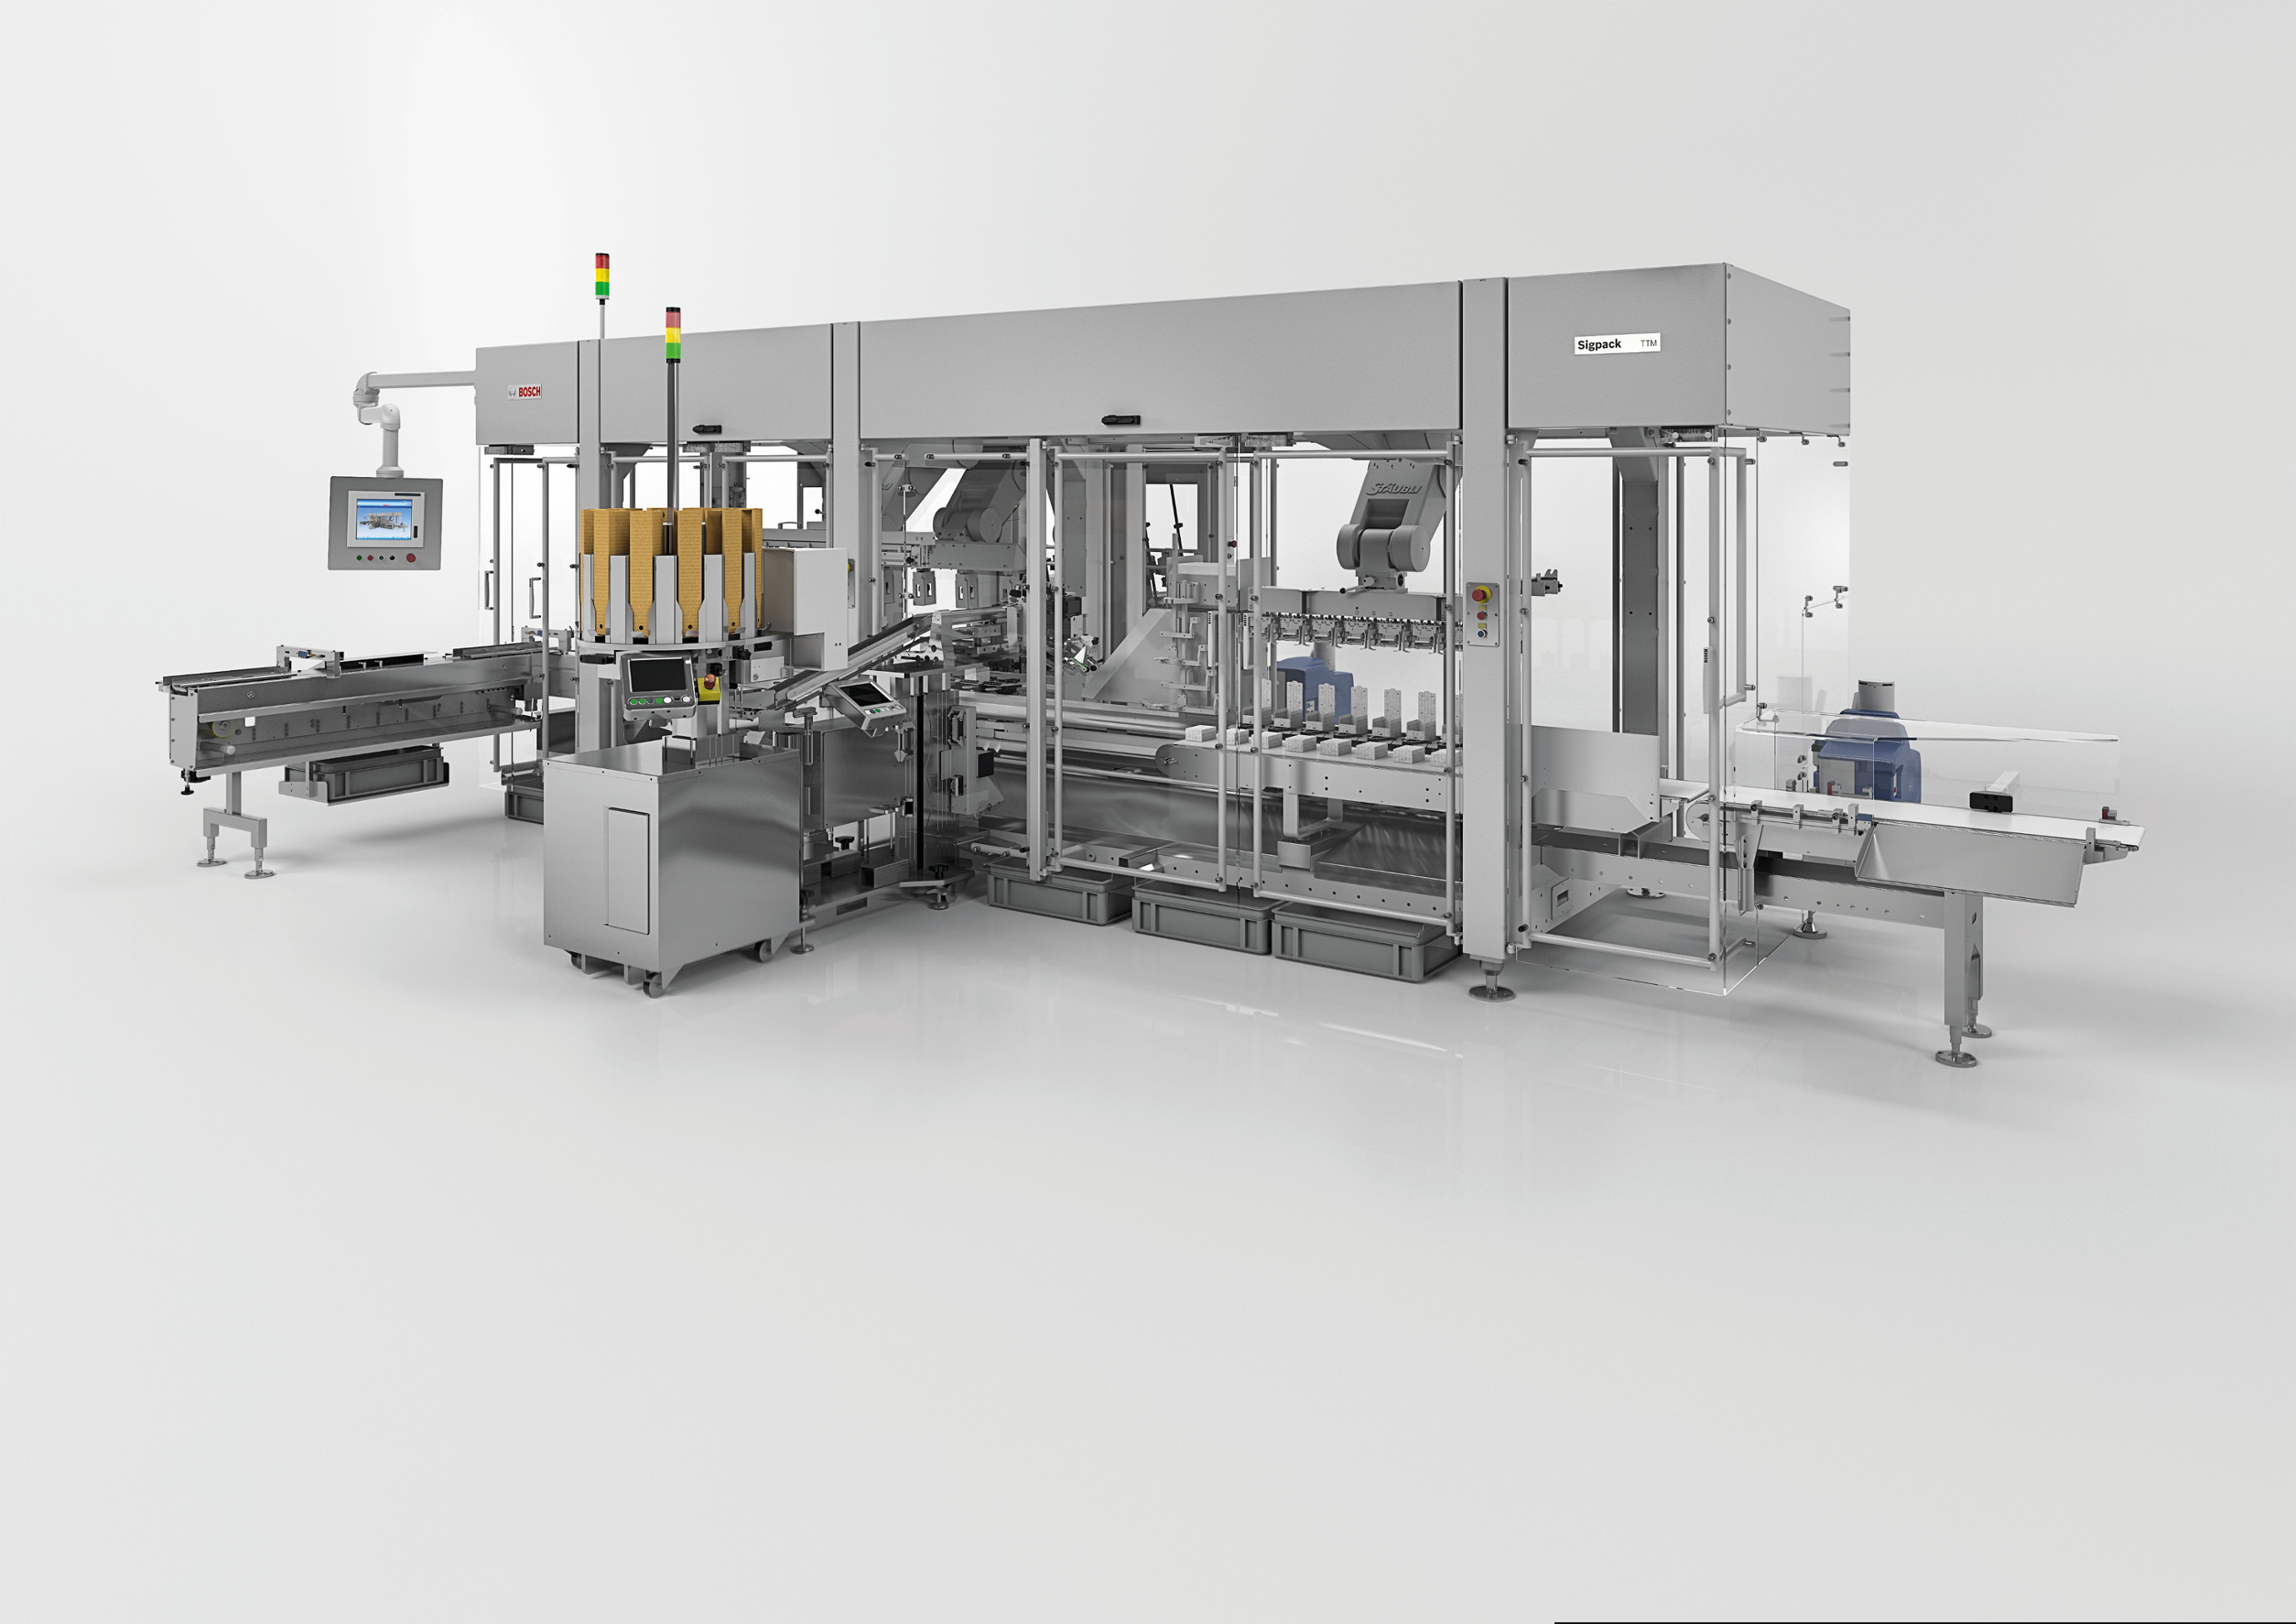 Highly flexible cartoning solution: Sigpack TTMP The new topload cartoner from Bosch is based on the successful TTM platform and is specifically adapted to the needs of pharmaceutical customers.